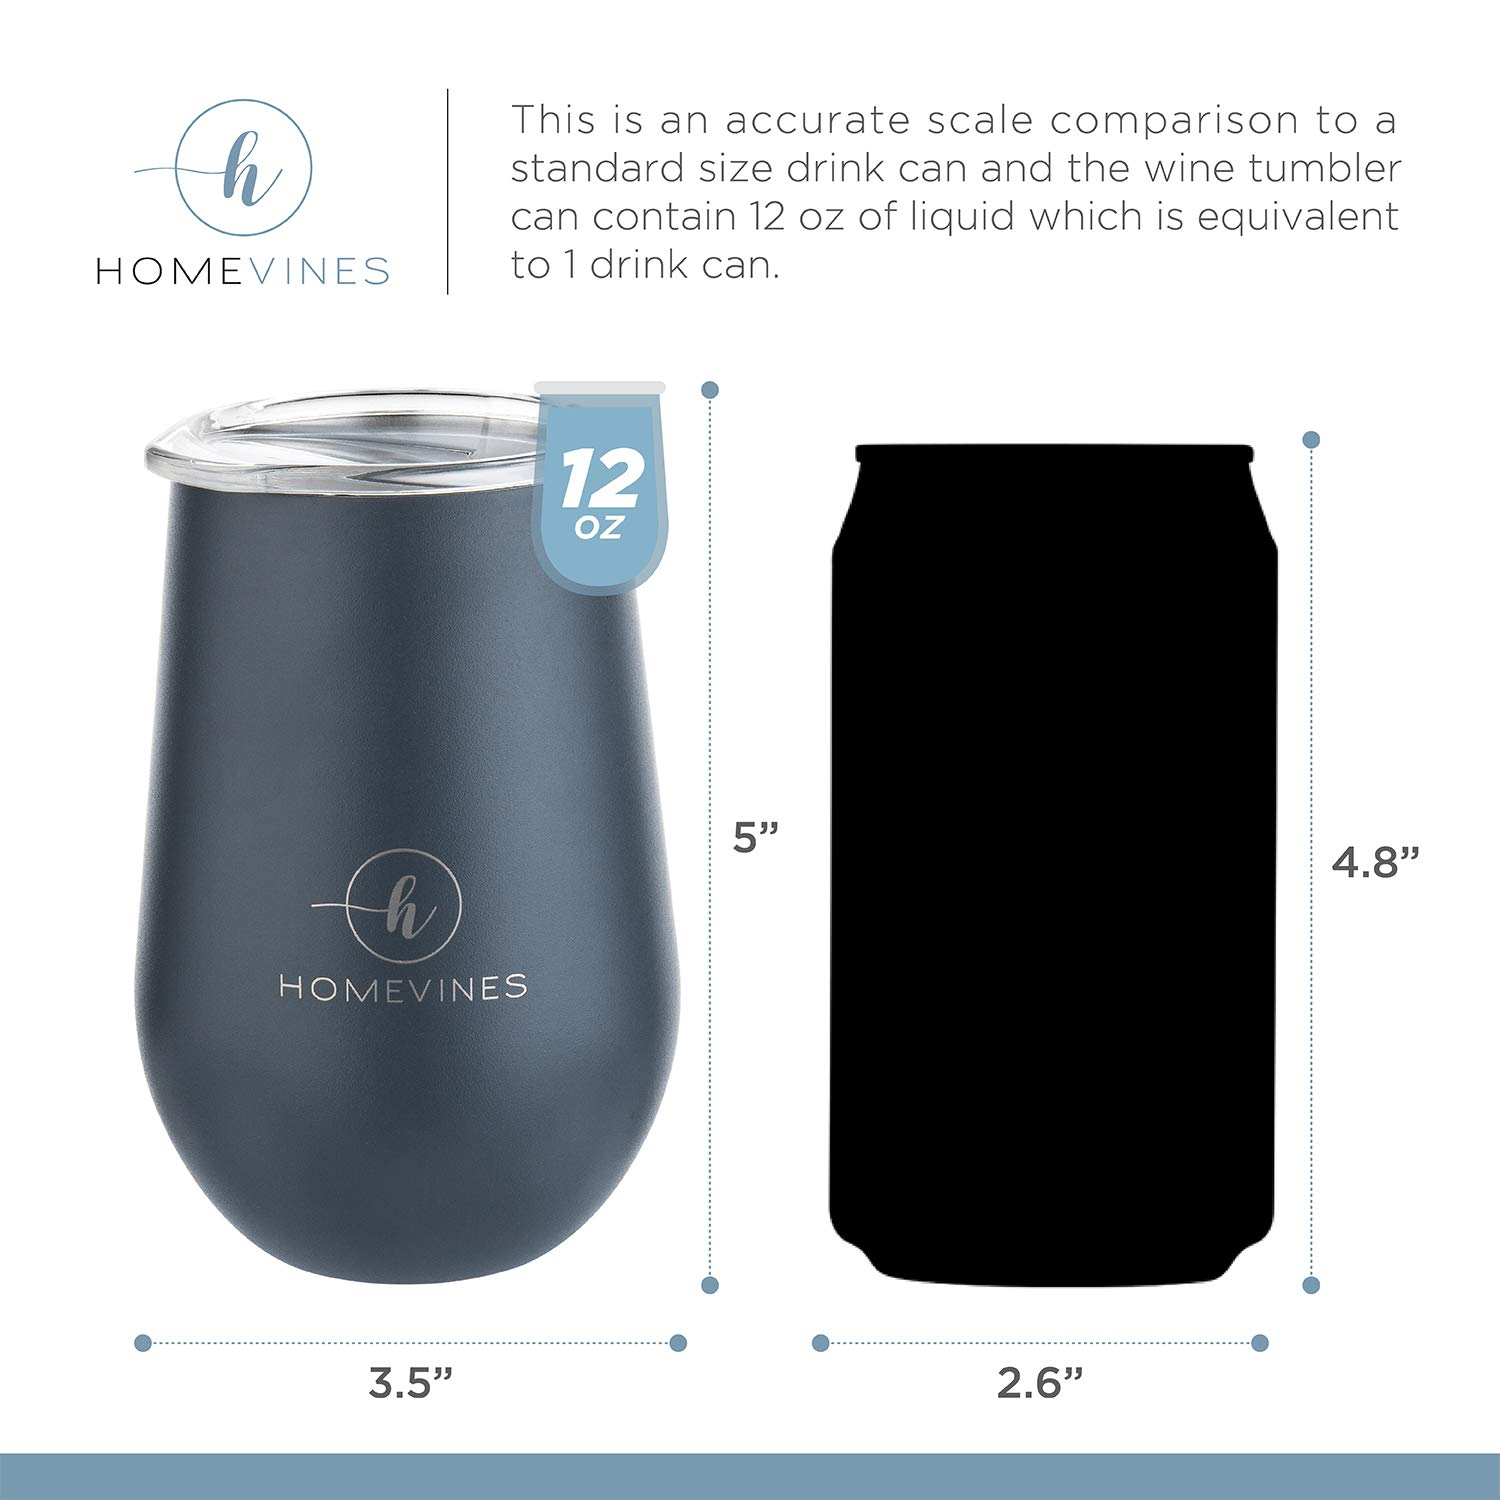 HomeVines Wine Tumbler With Lid - Insulated 12 oz Stainless Steel Wine Tumblers & Portable Stemless Glasses (Travel Adult Cups Perfect For Wine, Coffee, Drinks, Cocktails, Tea) by HomeVines (Image #3)